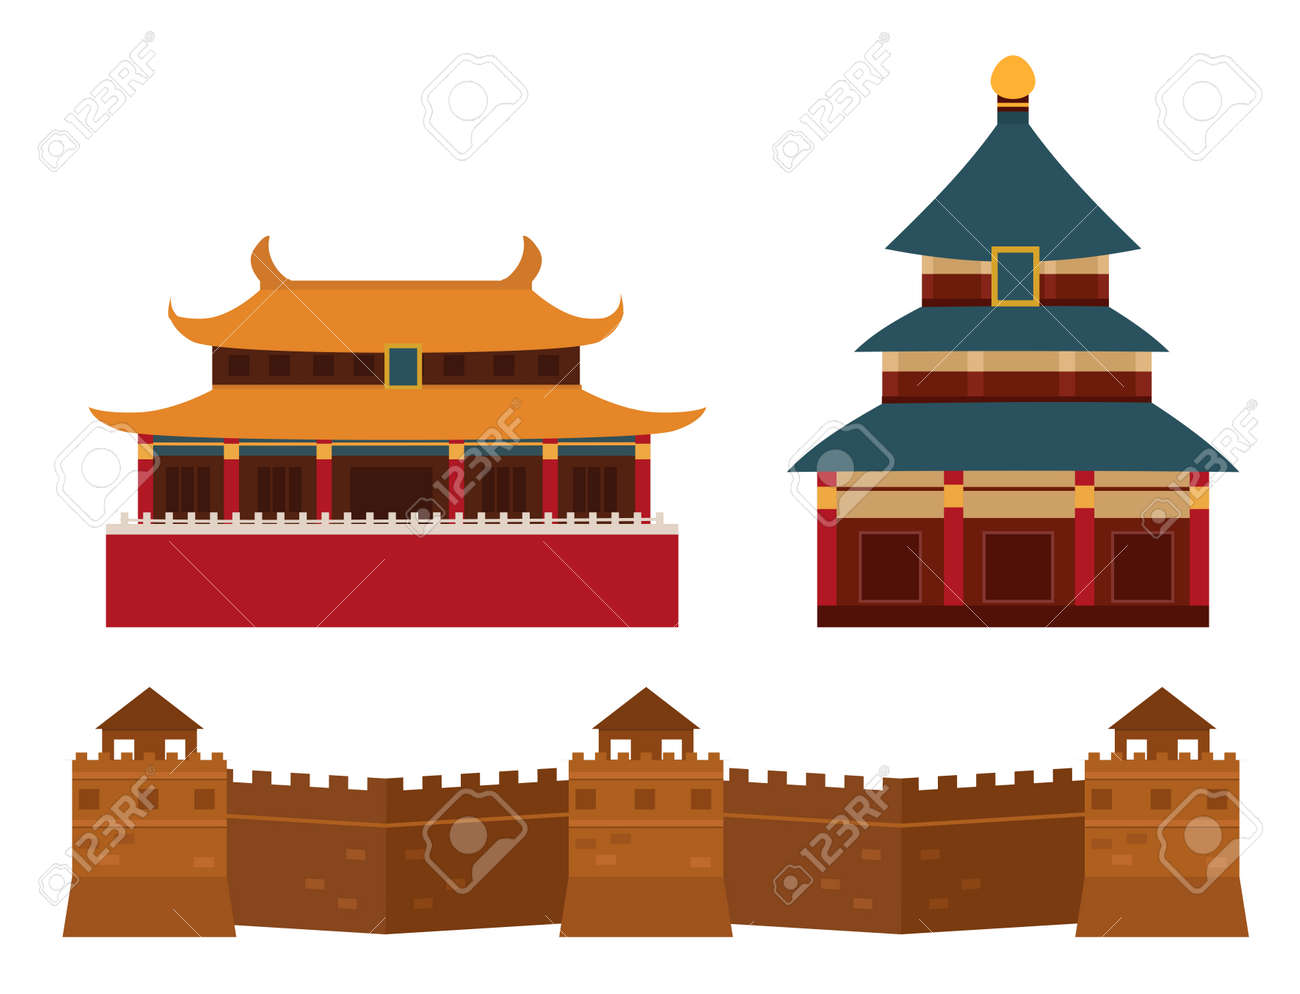 Great wall of China beijing asia landmark brick architecture culture history vector illustration. Stock Vector  sc 1 st  123RF.com & Great Wall Of China Beijing Asia Landmark Brick Architecture ...